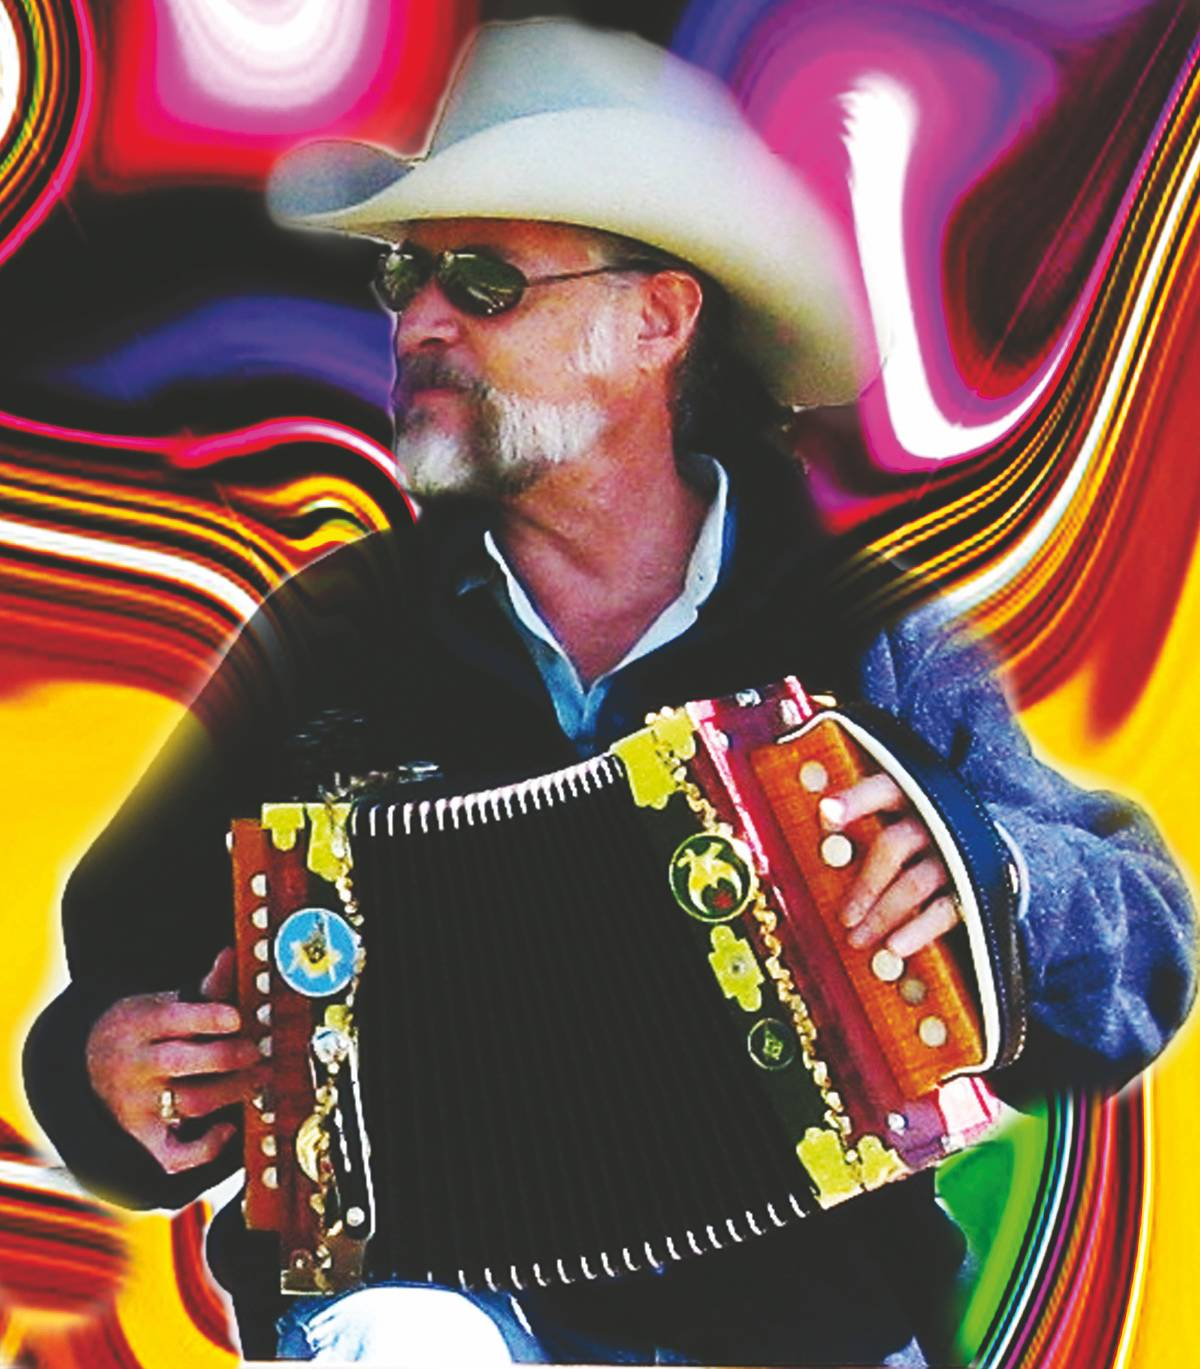 Mr. Mojo, leader of Mojo and the Bayou Gypsies, will perform at CLC on Jan. 23.